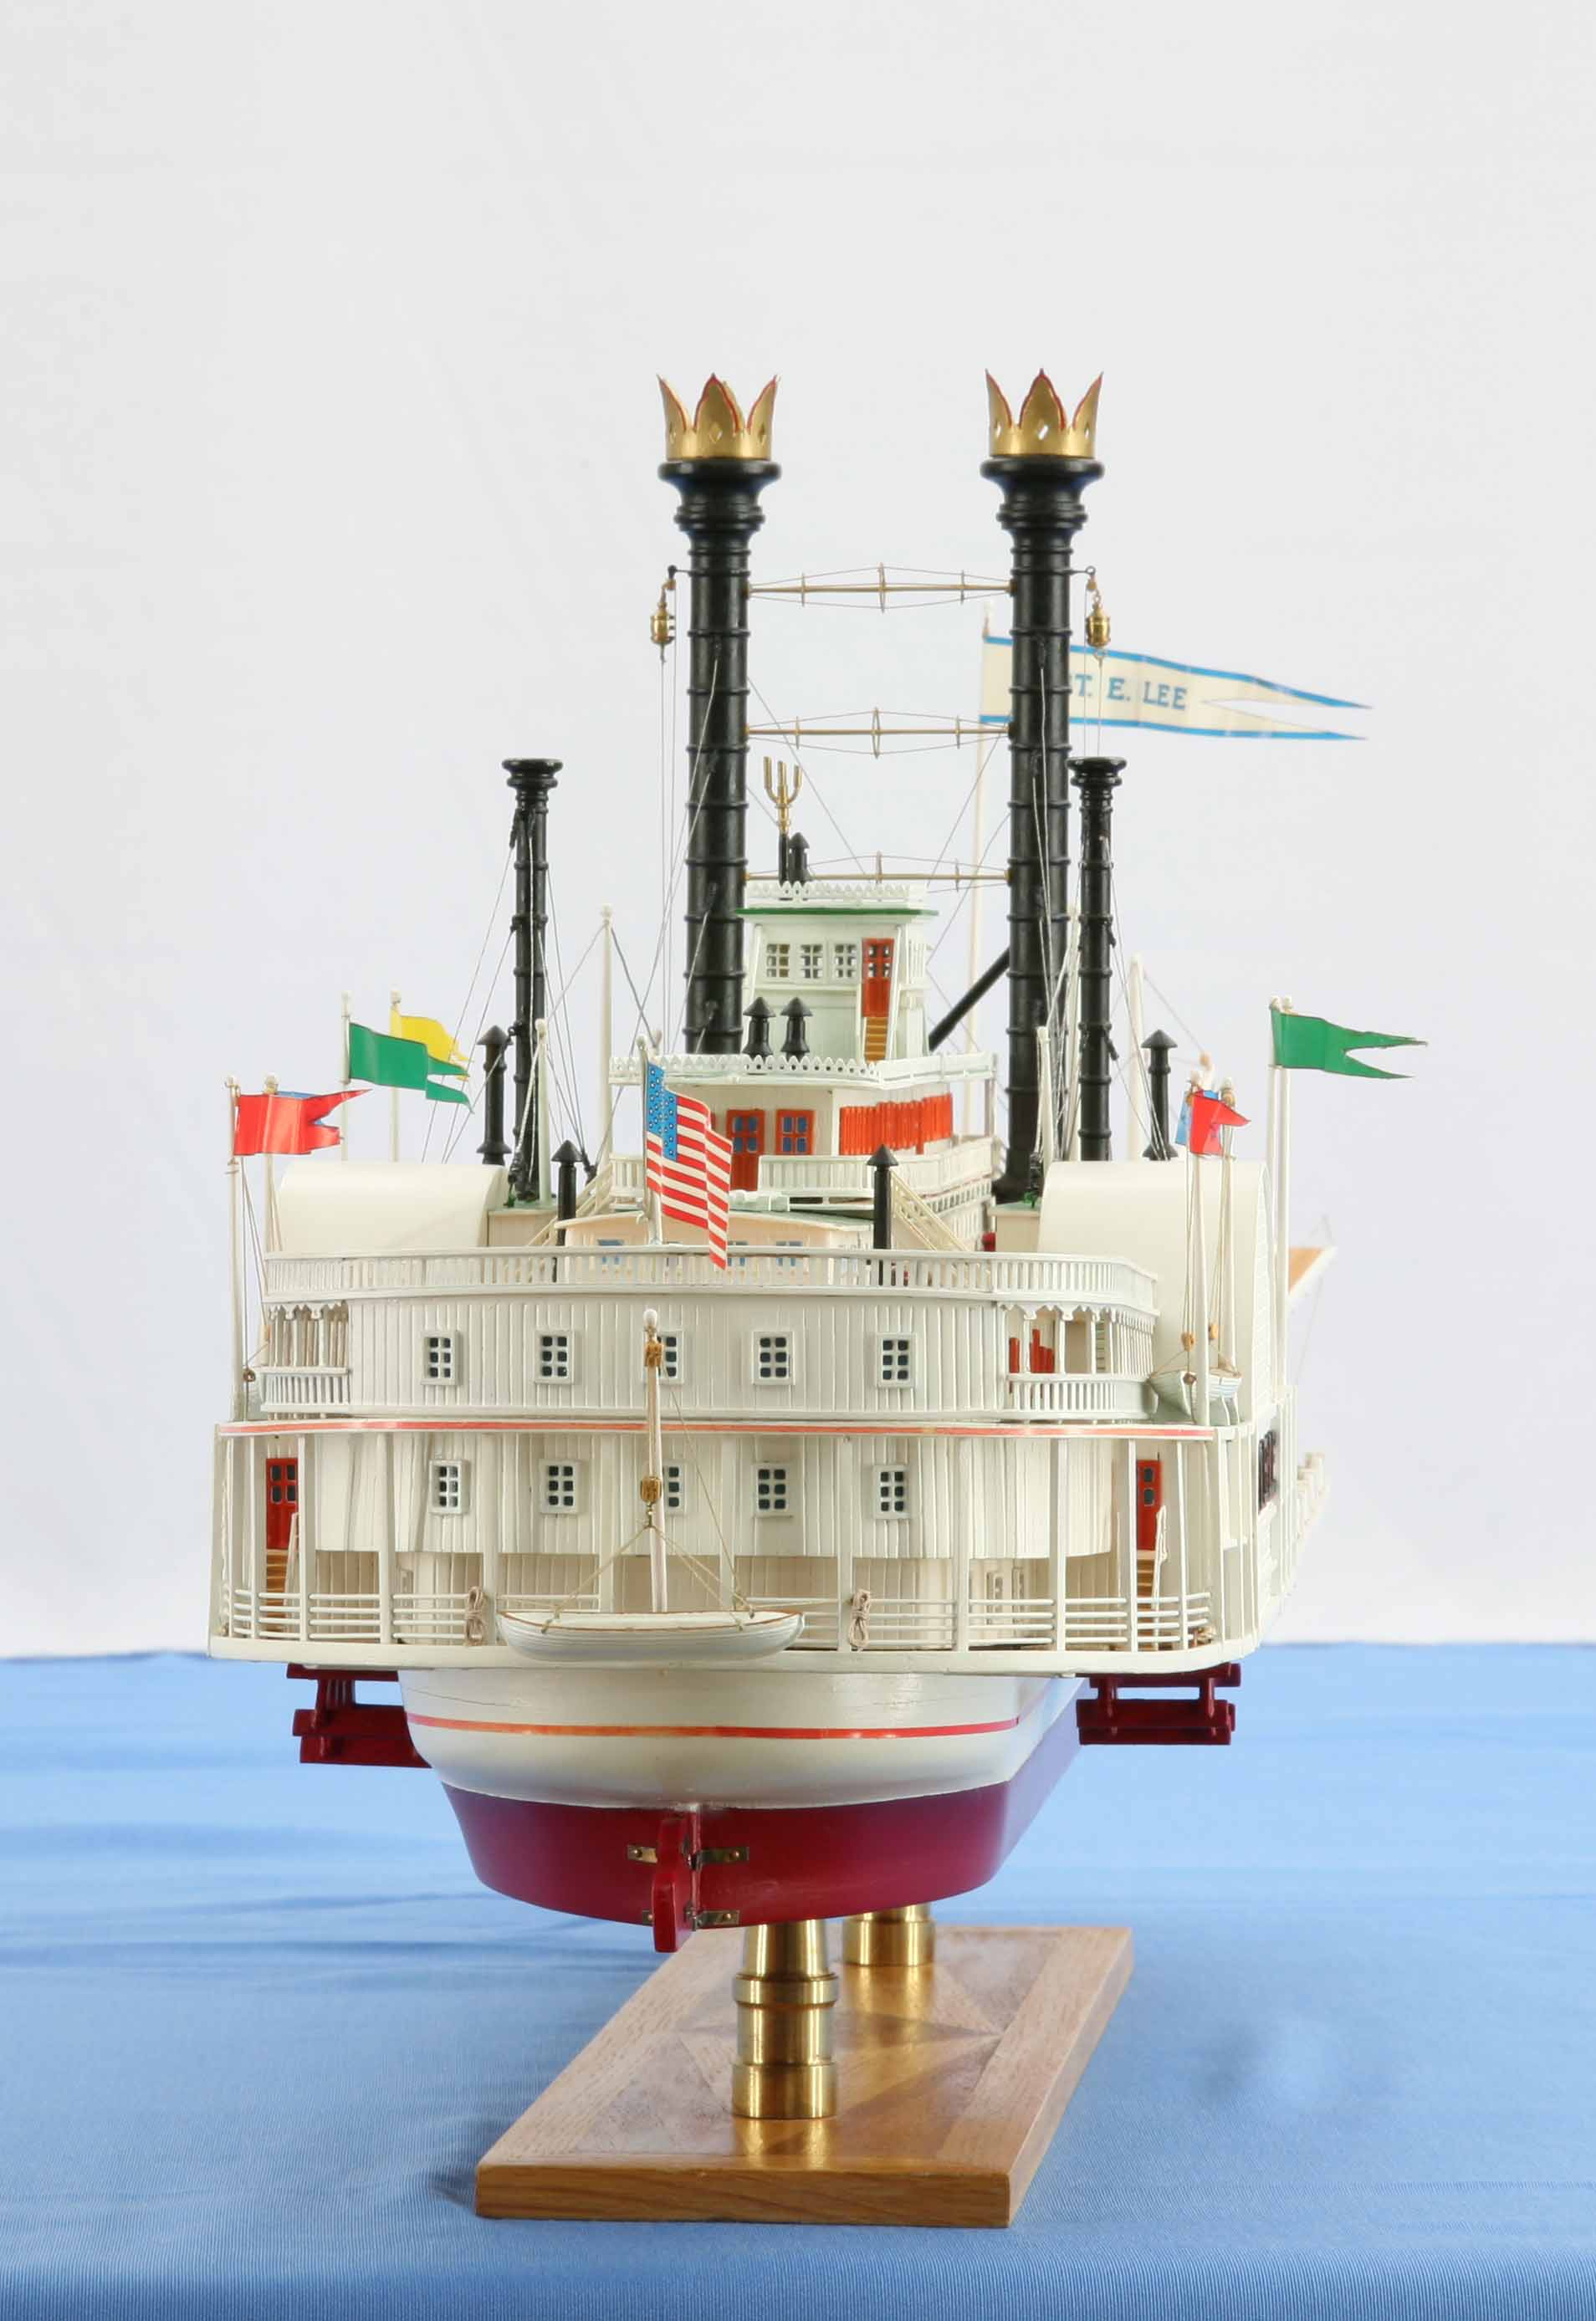 Photos of ship model Mississippi steamboat ROBERT E. LEE